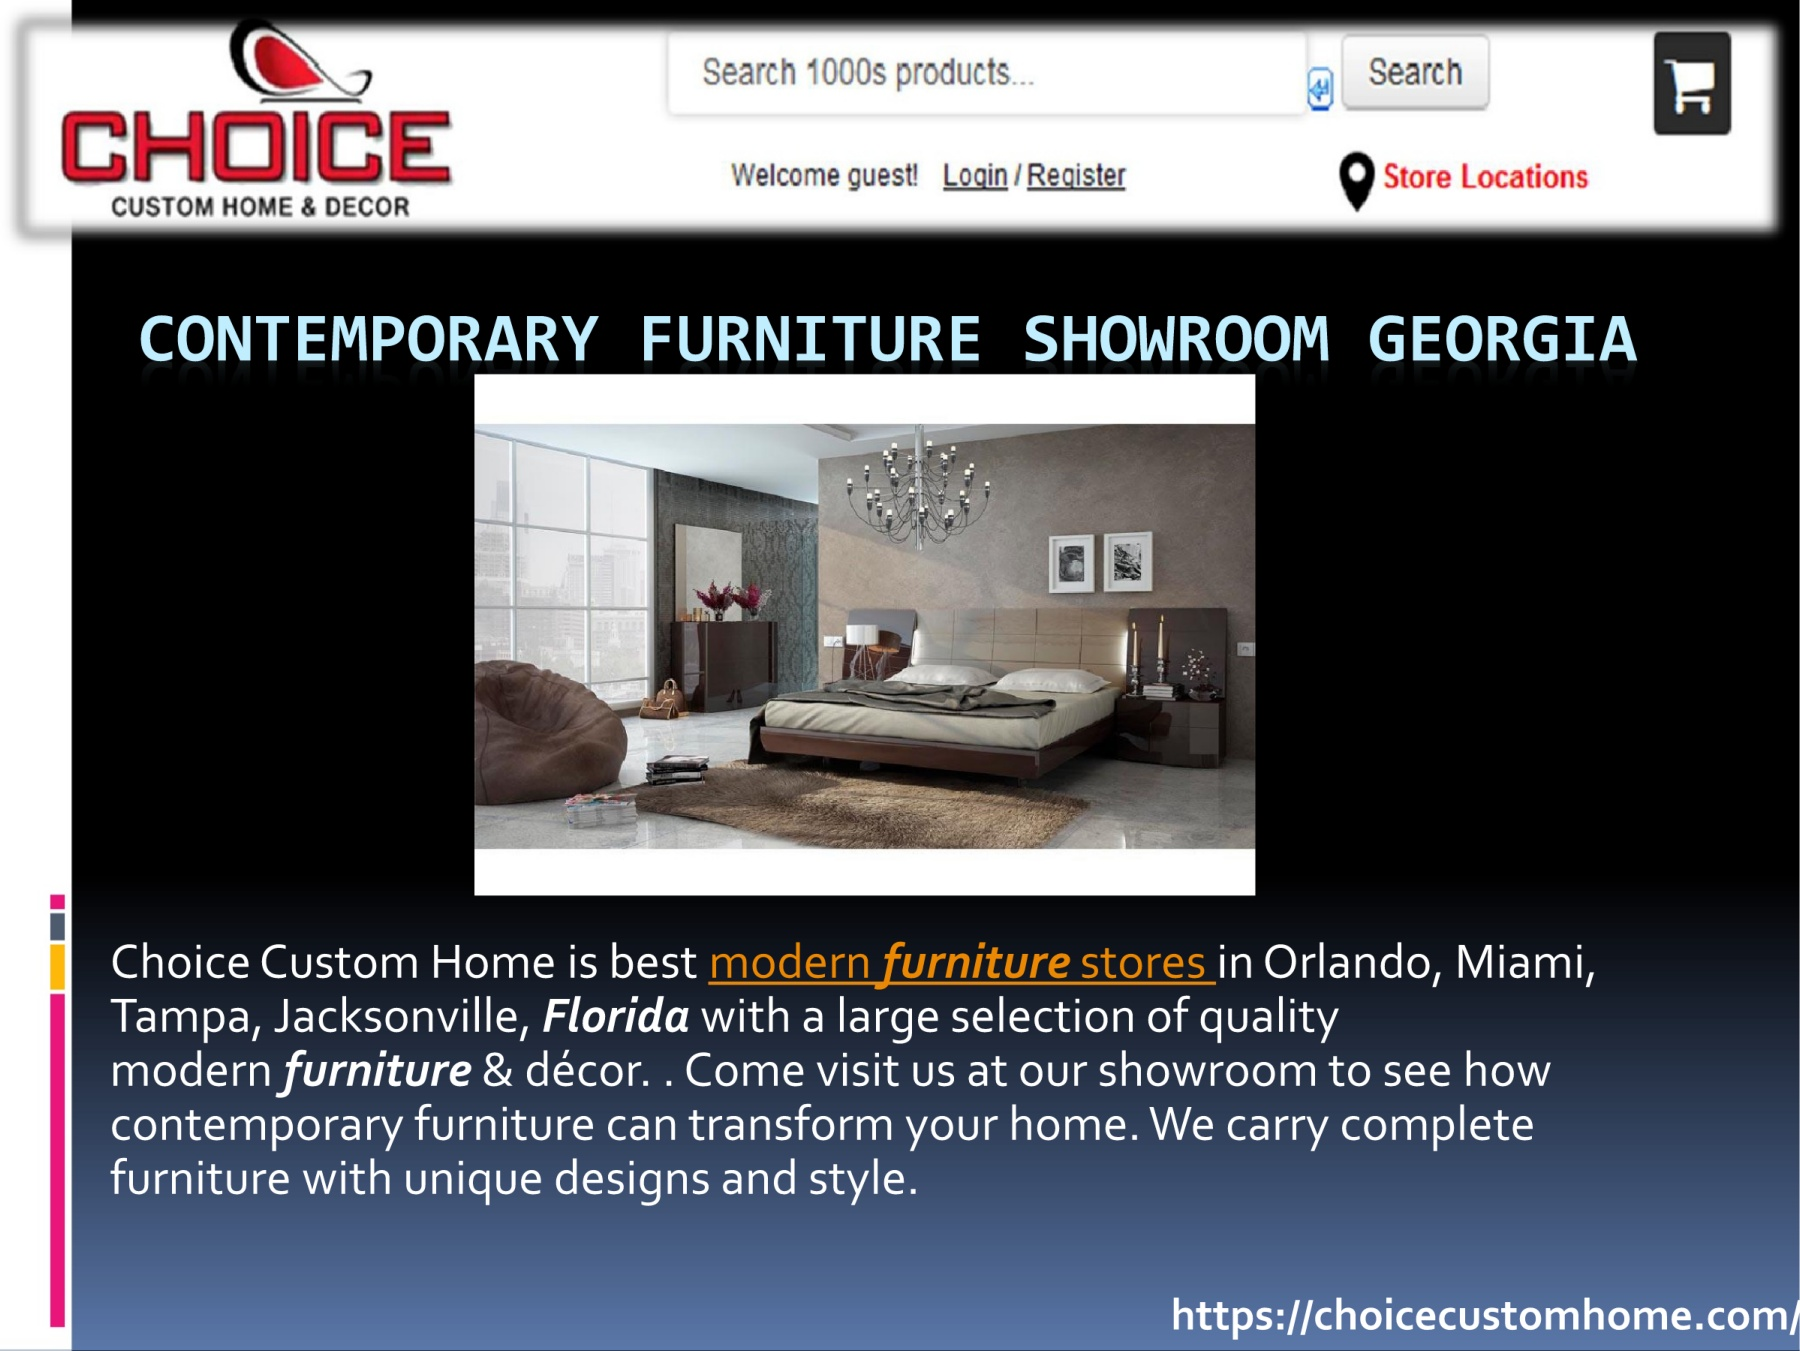 Choice Custom Home Is Best Modern Furniture S In Orlando Miami Tampa Jacksonville Florida With A Large Selection Of Quality